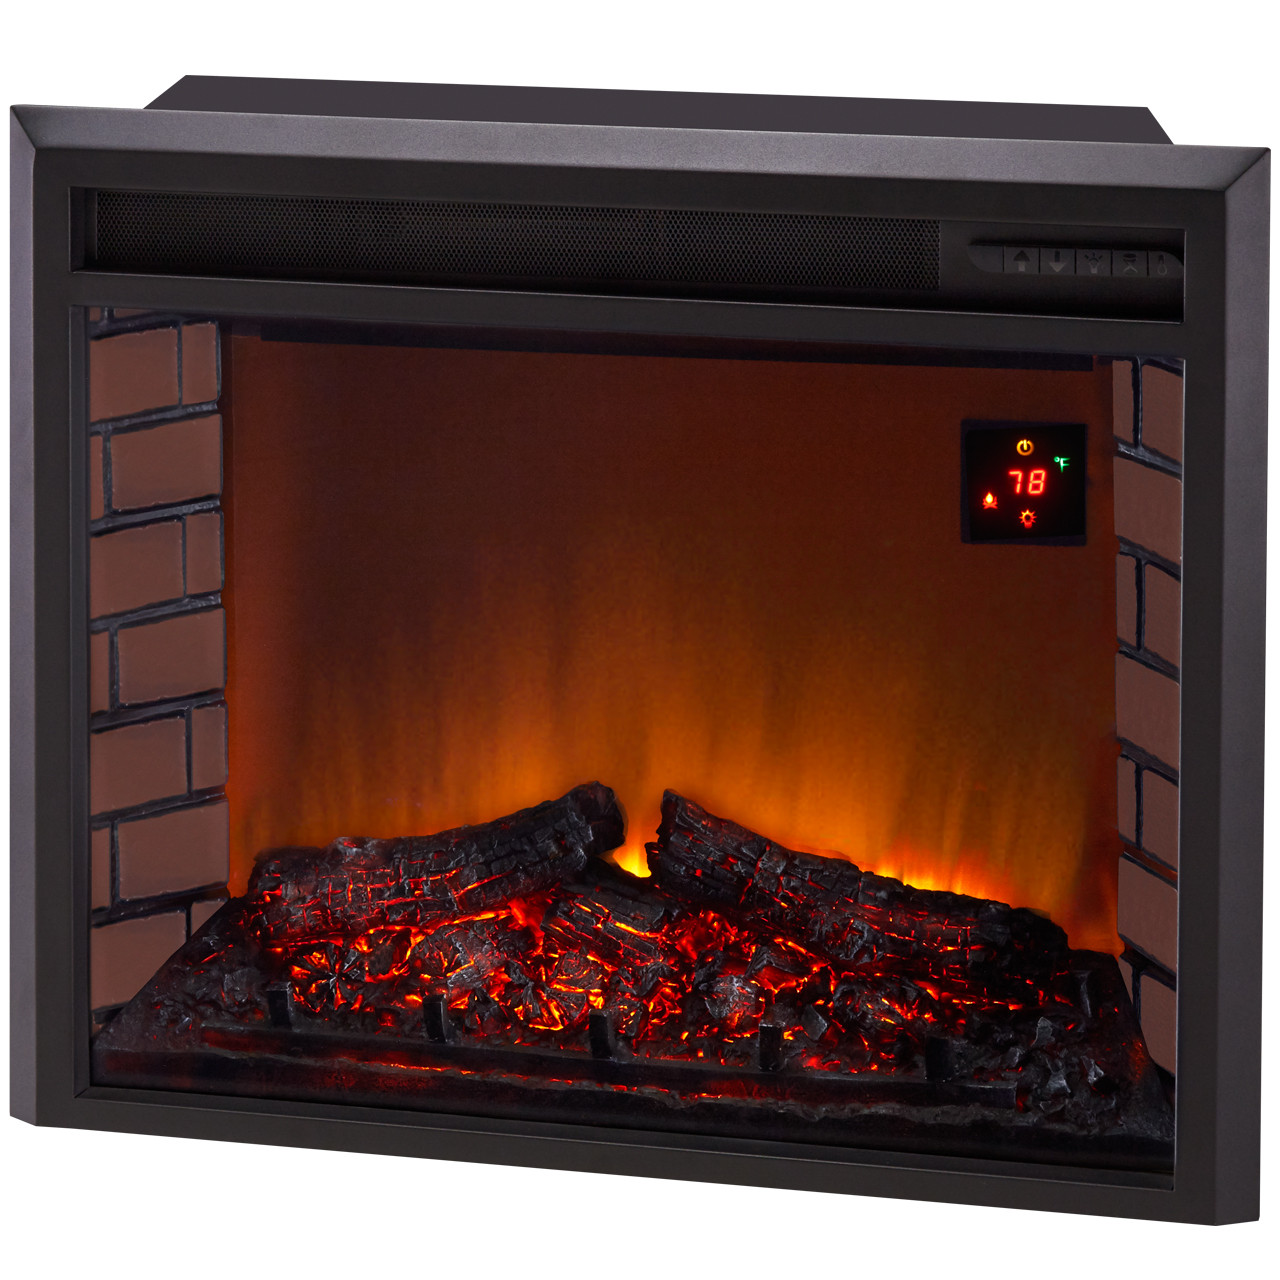 procom deluxe electric fireplace with remote control oak finish